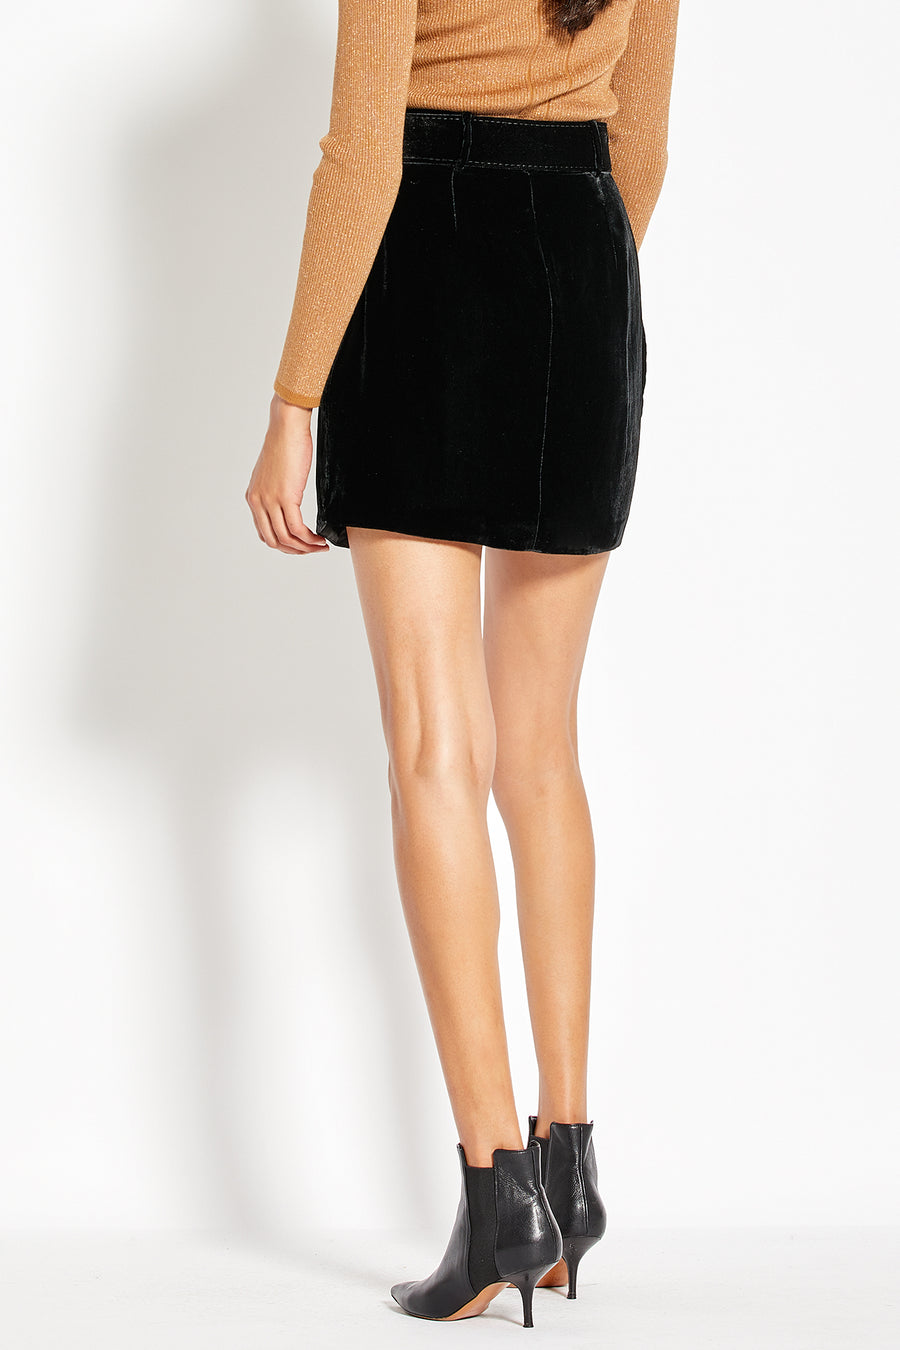 Tulip Mini Skirt - Black